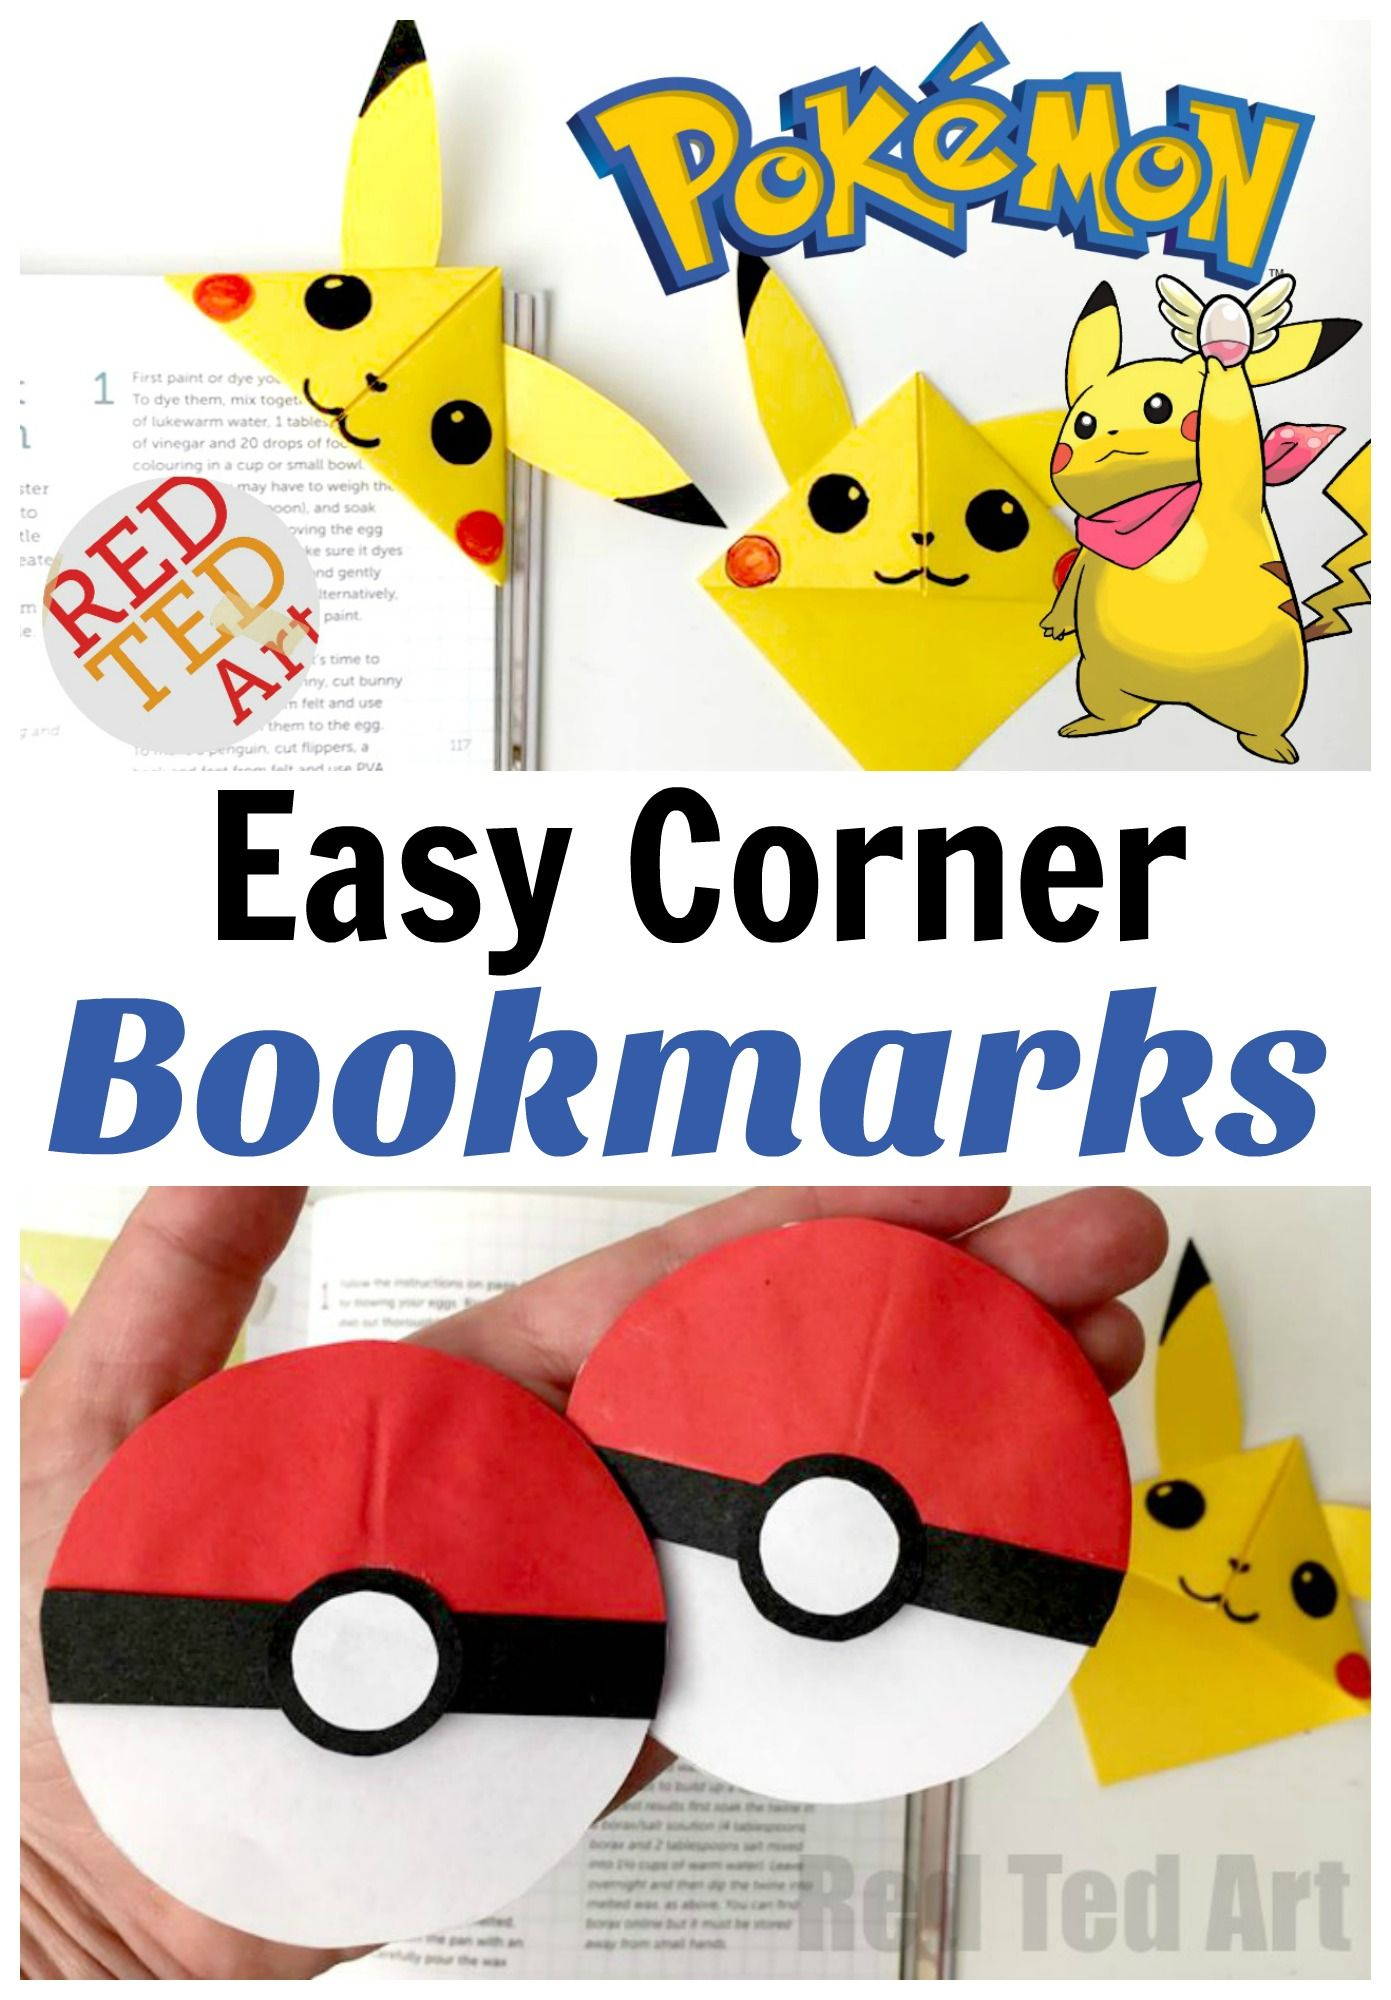 With Everyone Going Pokemon Go Crazy These Past Weeks We Have Been Enjoying Lots Of DIY Ideas Love This Pikachu Bookmark Simple Adorable Cute